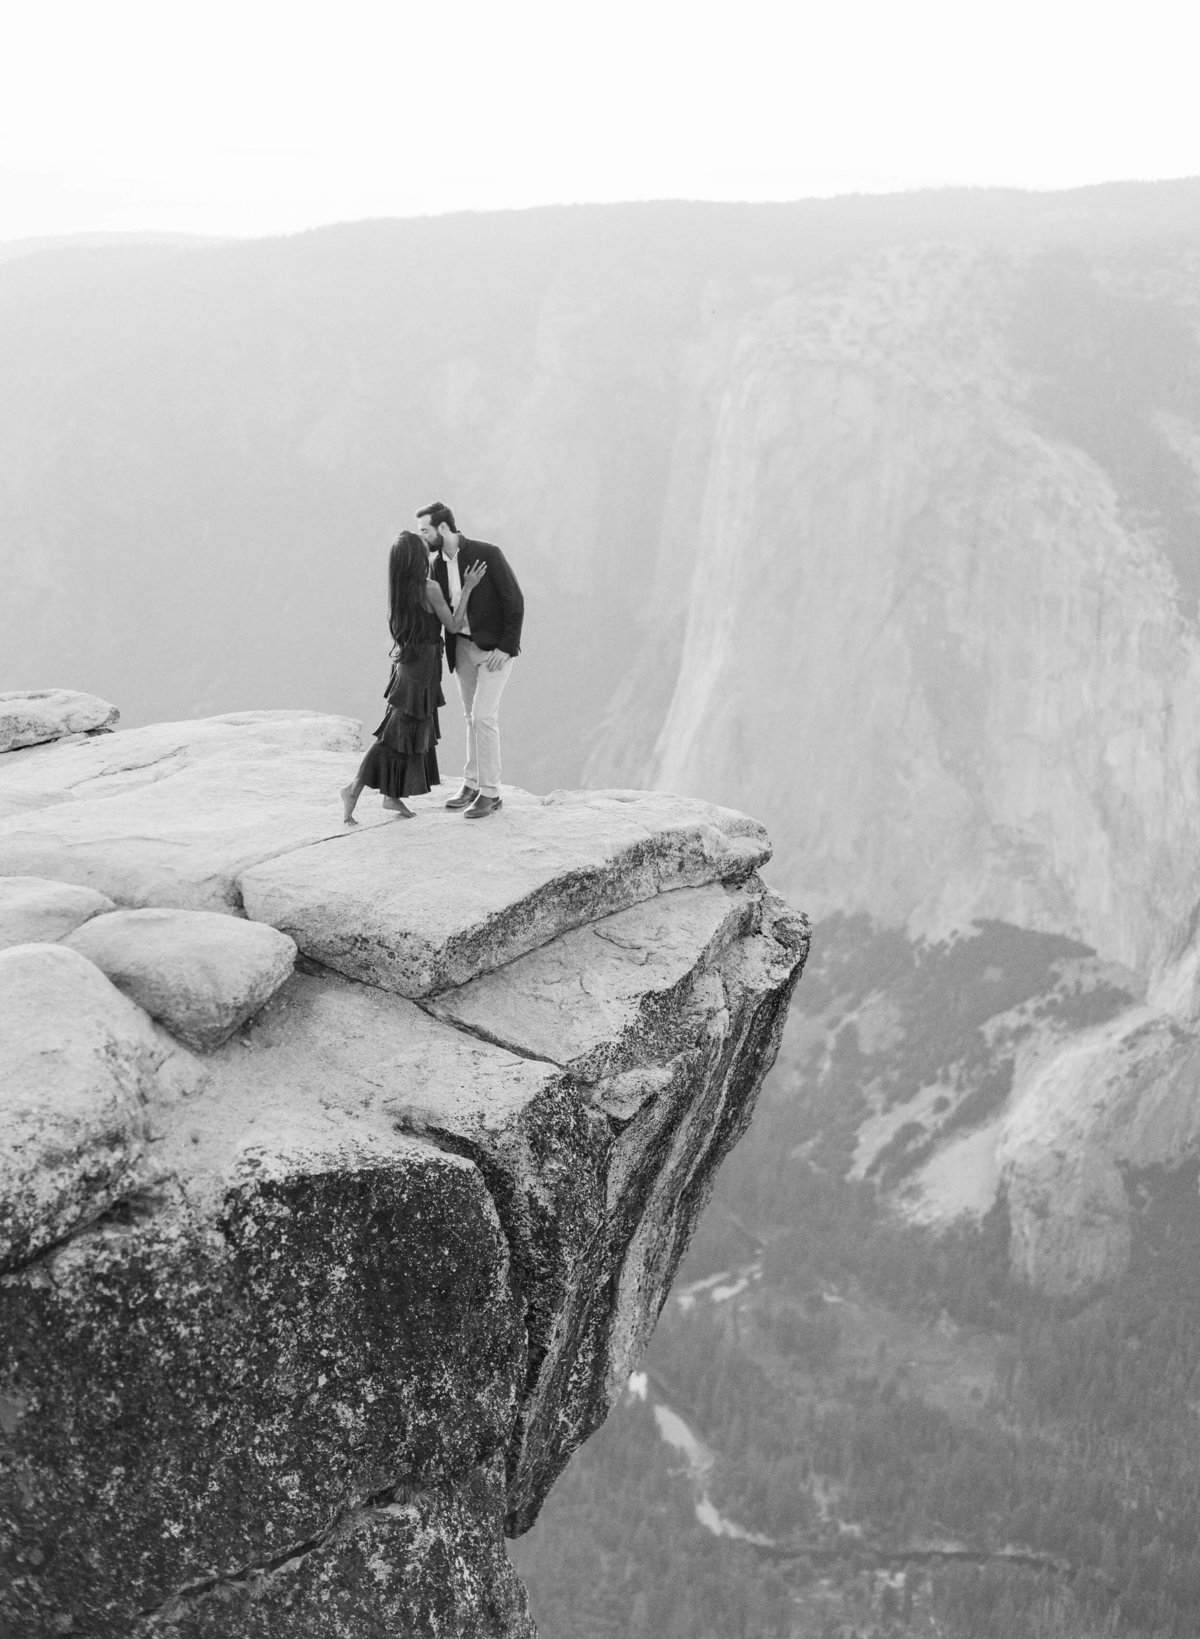 48-KTMerry-weddings-engagement-photography-Yosemite-cliff-black-white